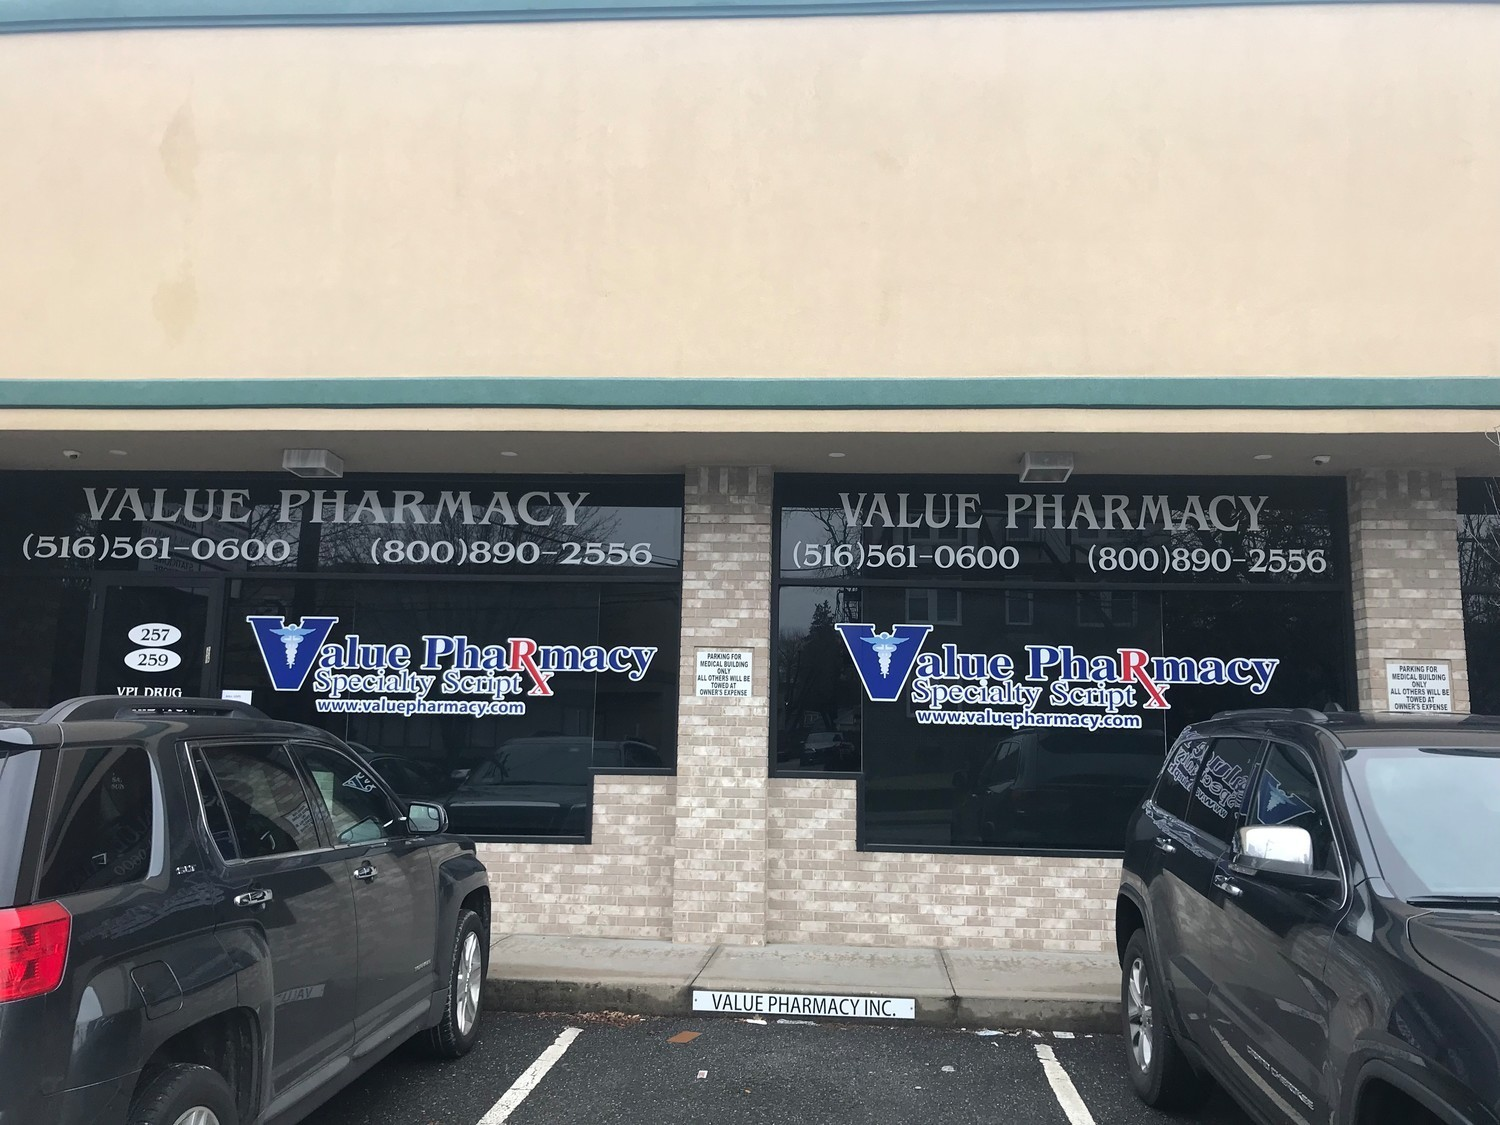 The owner of Value Pharmacy in Lynbrook was sentenced to six months in jail and 200 hours of community service for defrauding Medicaid and participating in a kickback scheme. He also must pay $3 million in penalties.